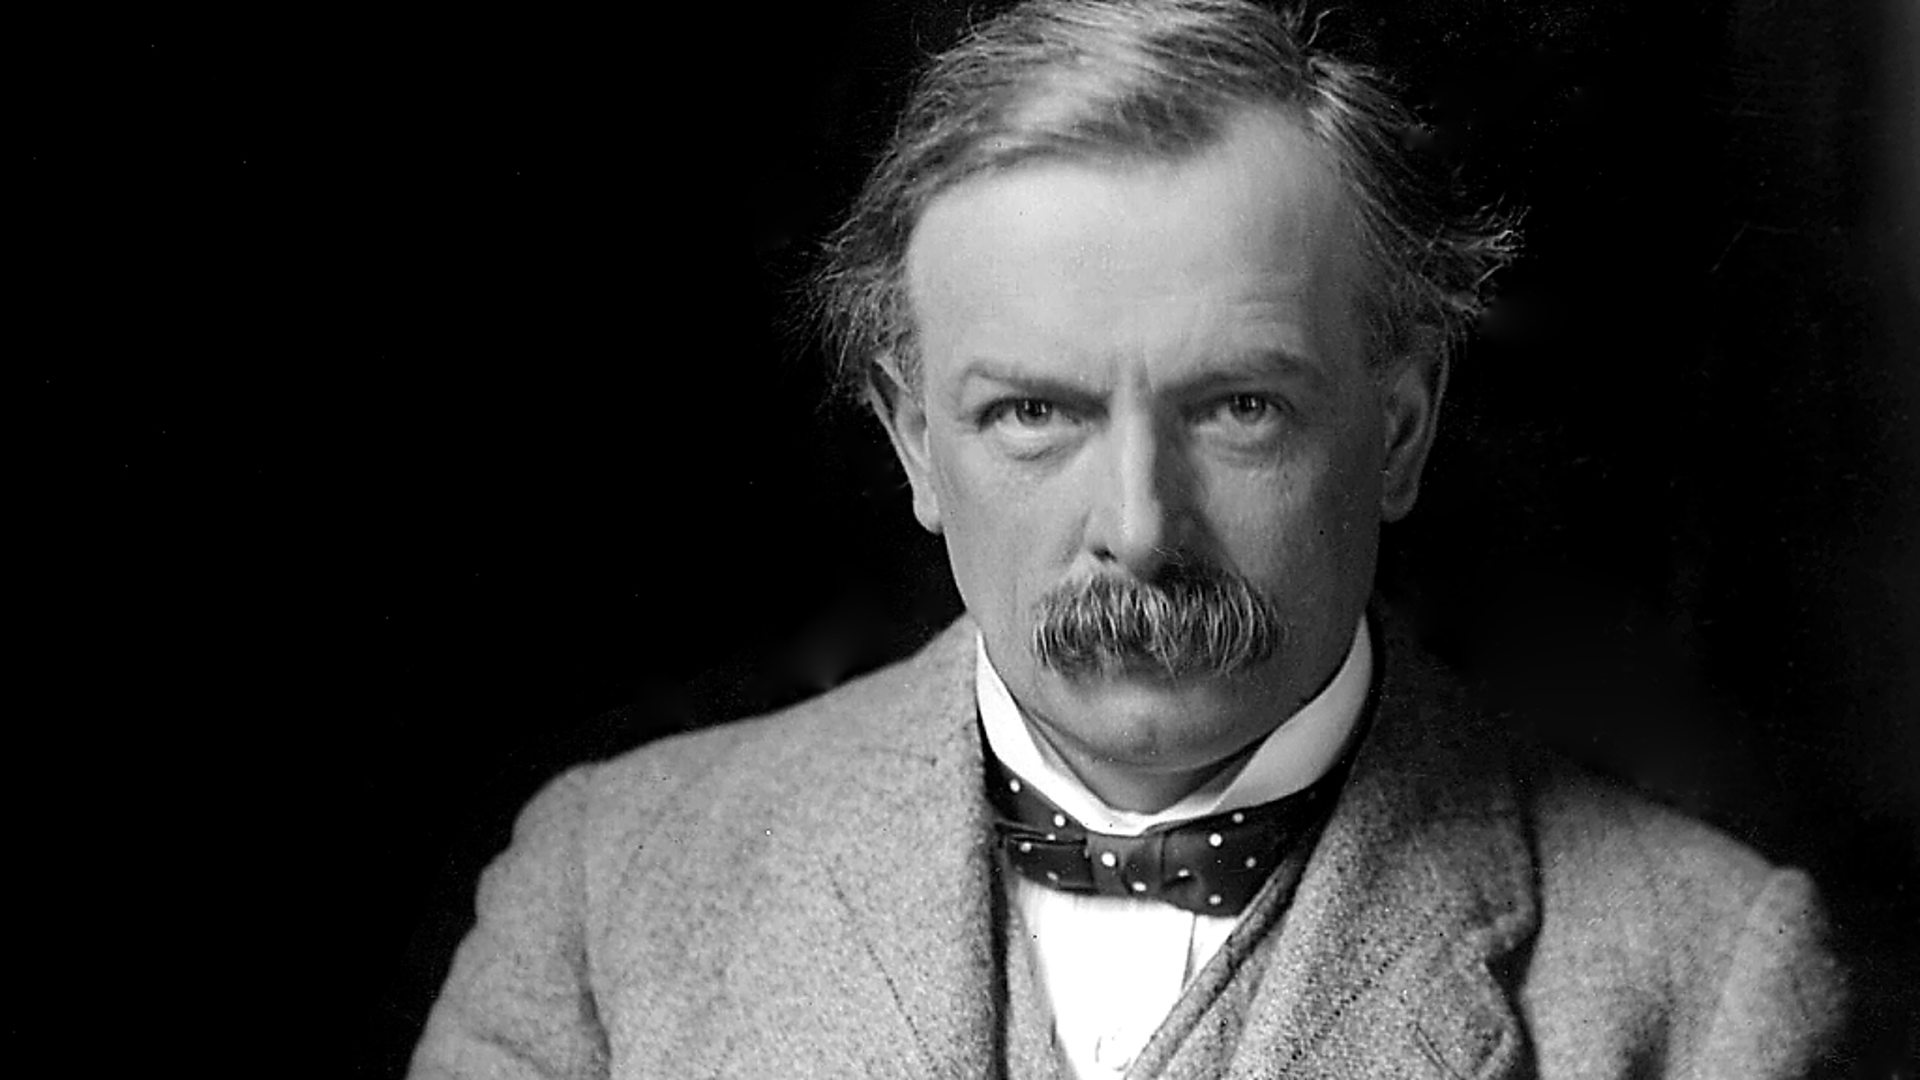 British_Prime_Minister:_David_Lloyd-George